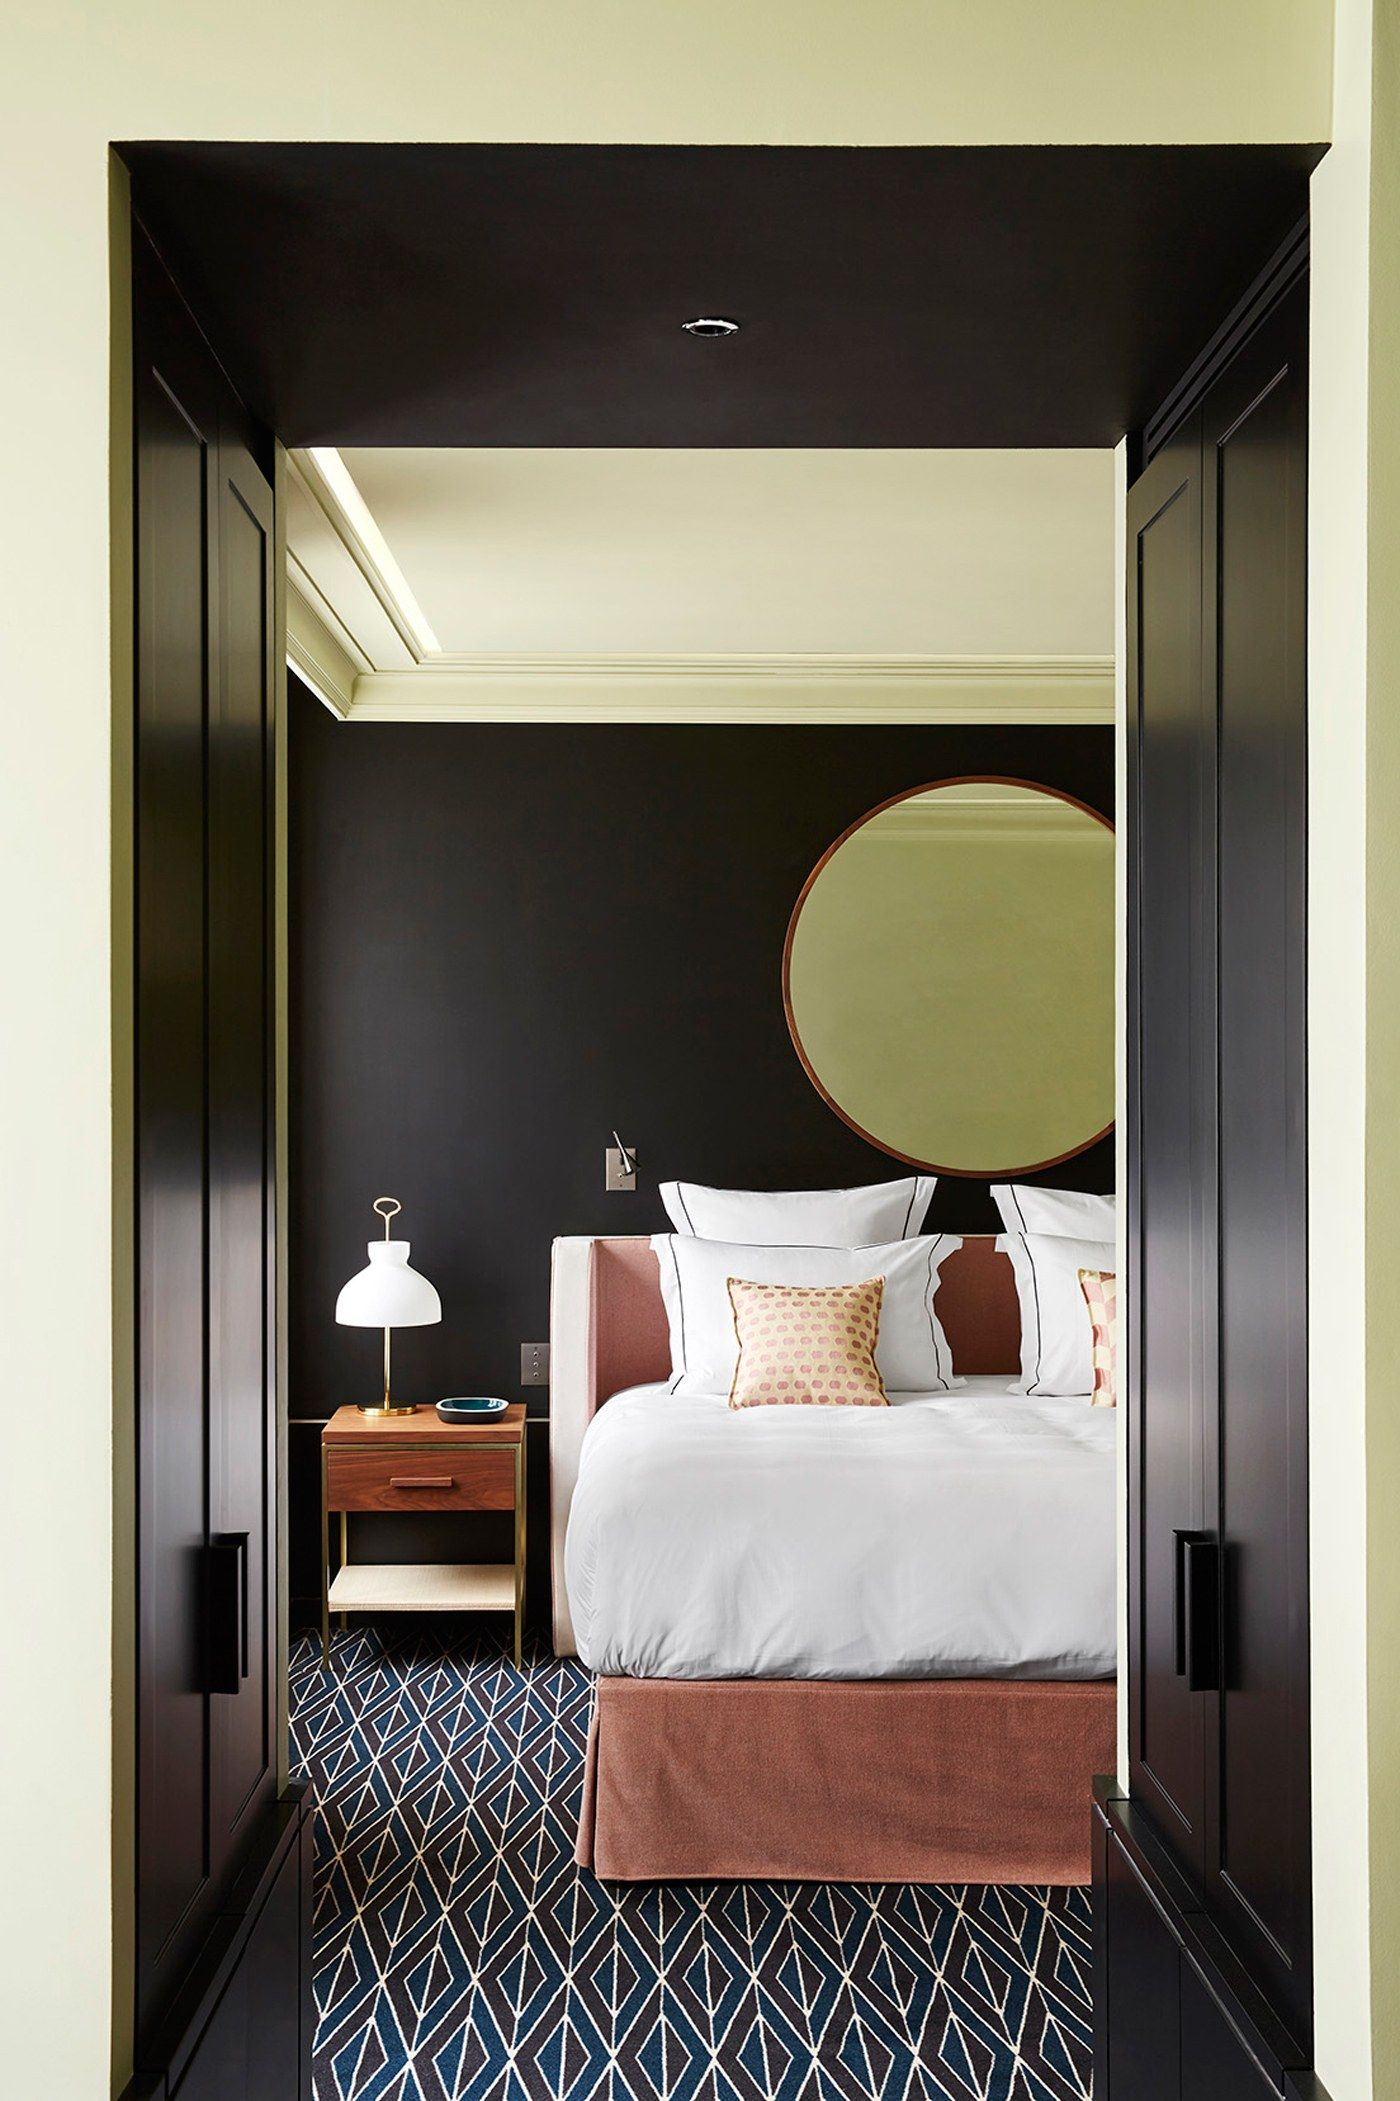 Hotel Bedroom: 12 Très Chic Boutique Hotels In Paris